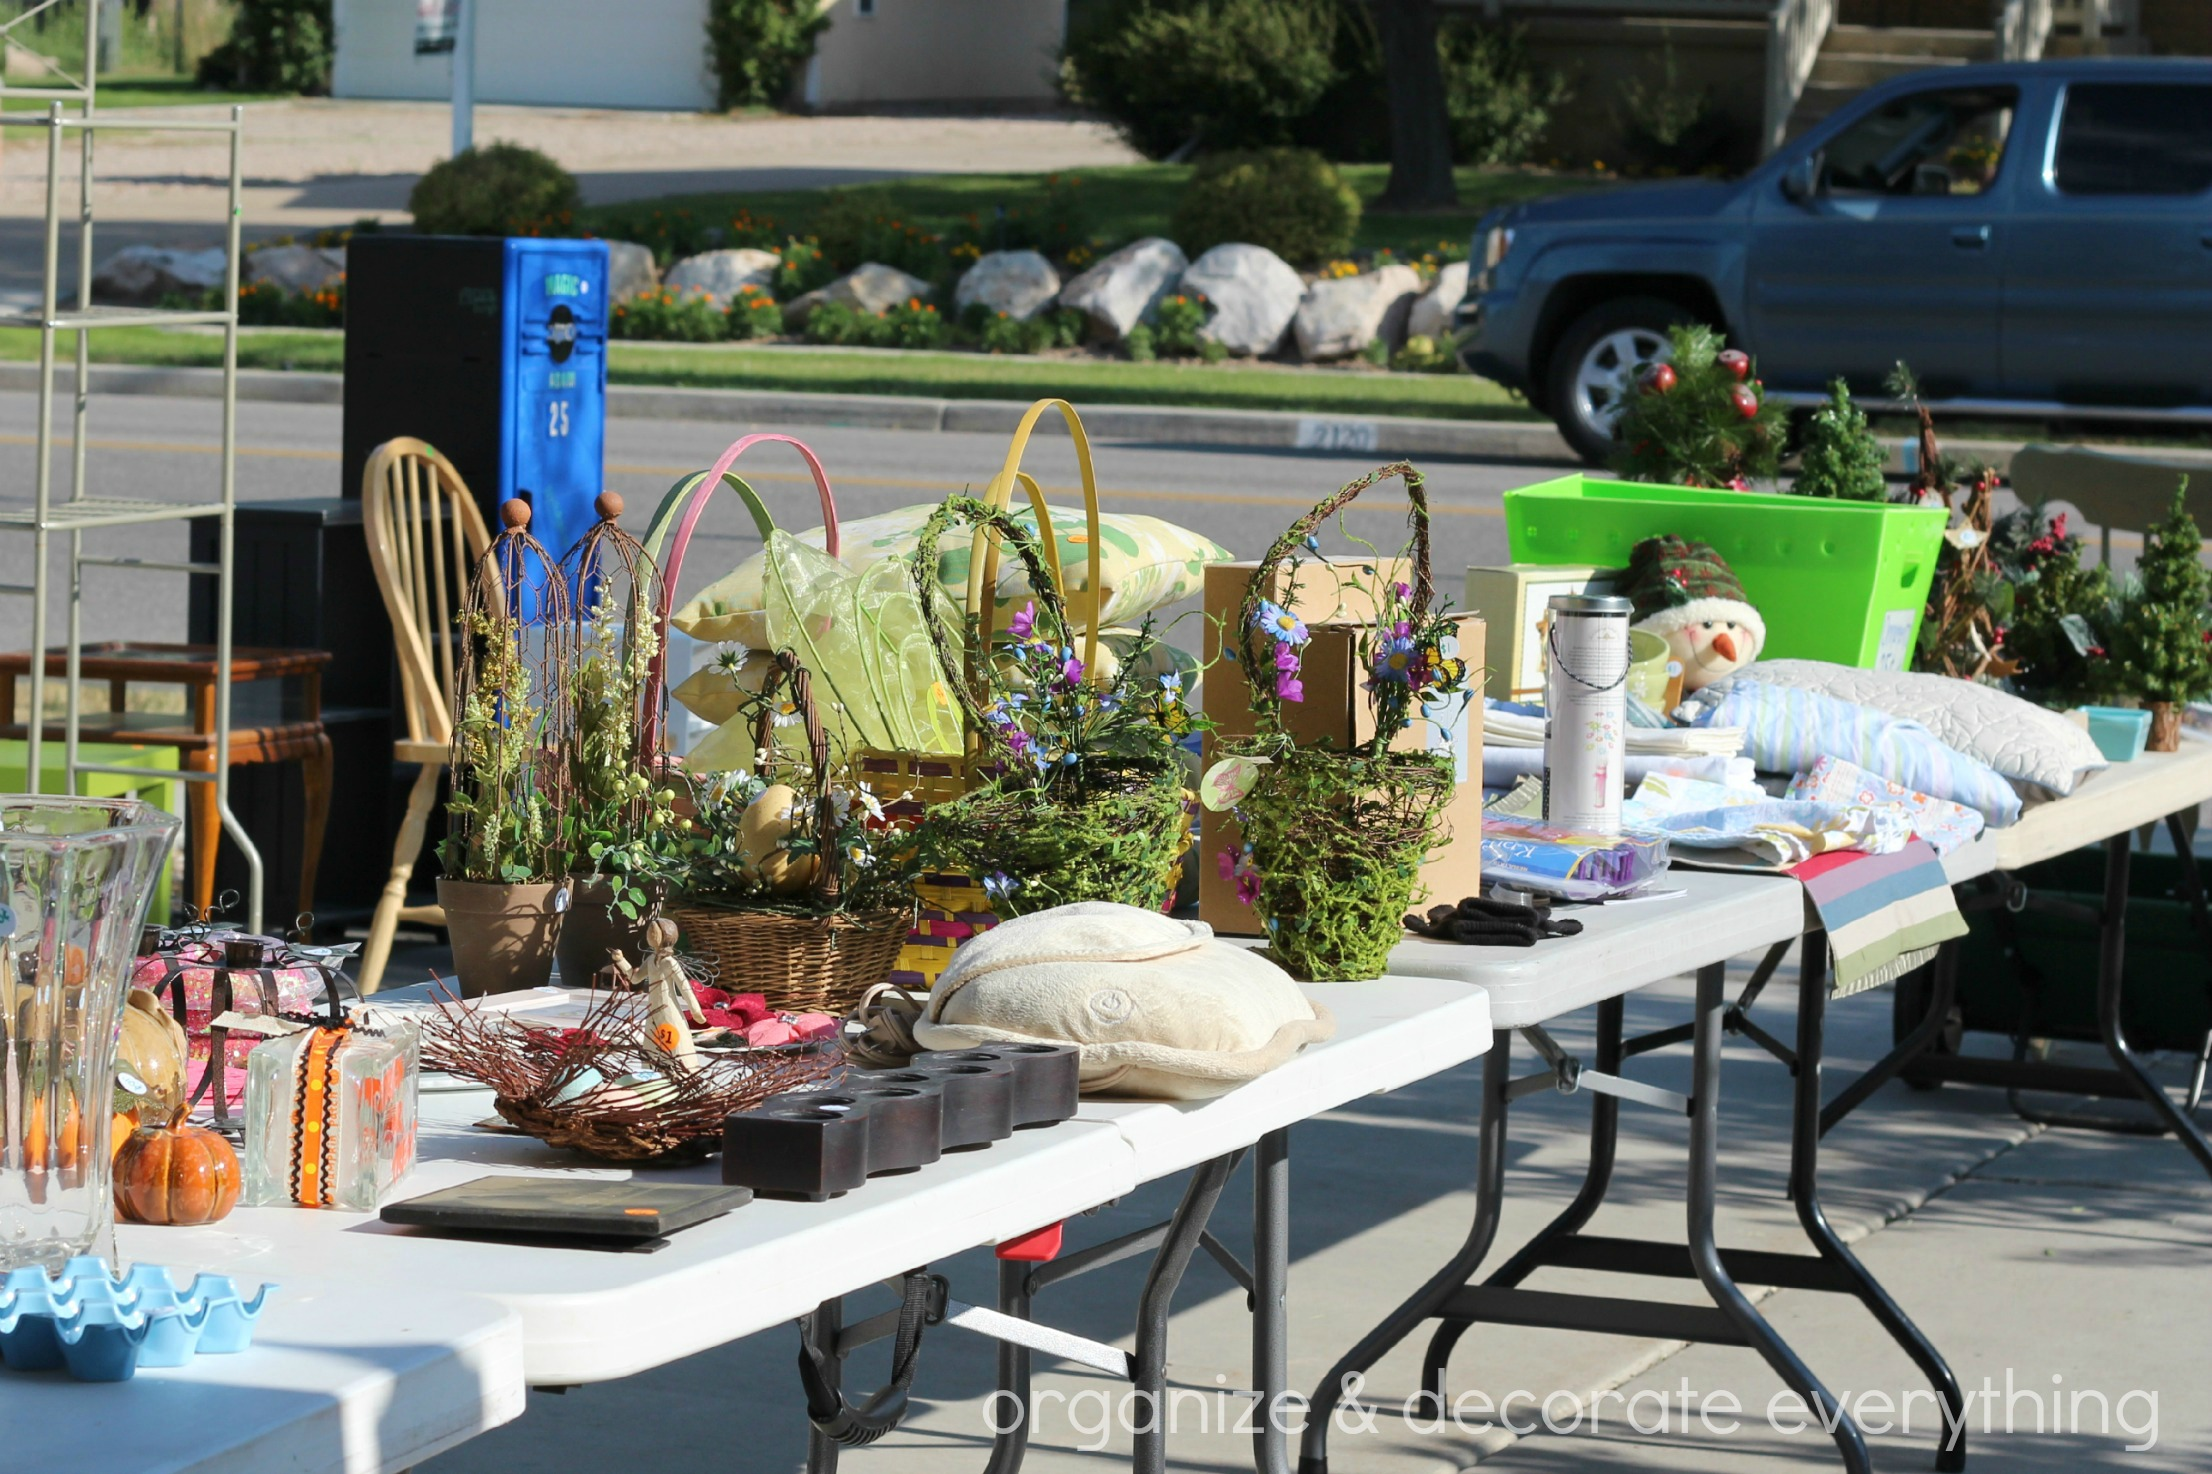 10 tips for a successful yard sale organize and decorate for 6 car garage for sale